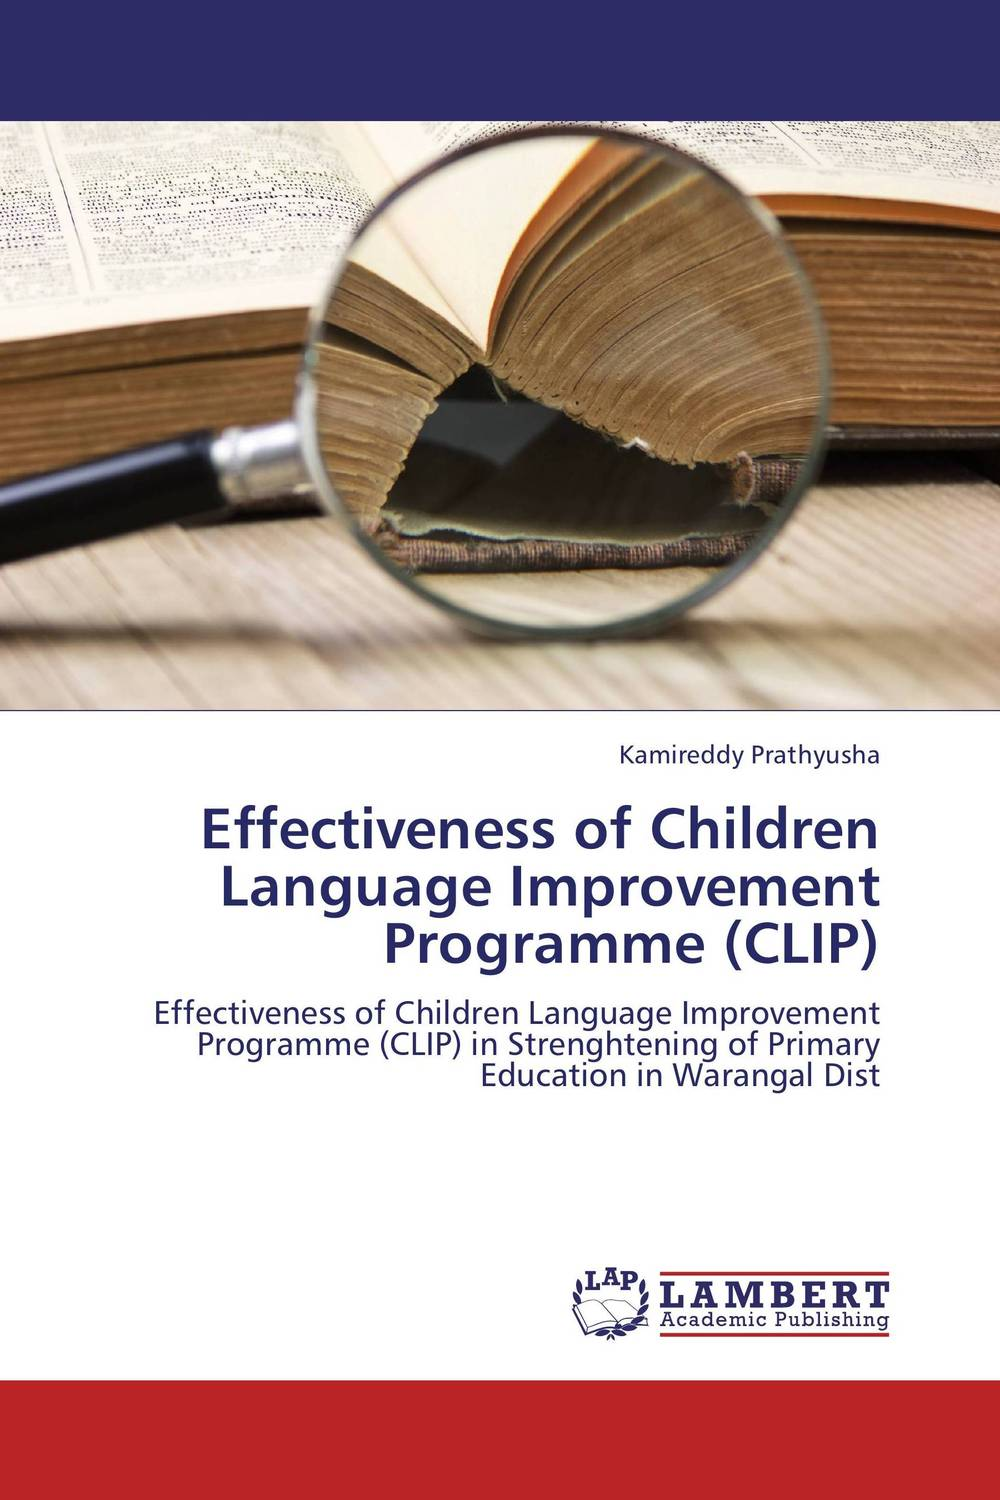 купить Effectiveness of Children Language Improvement Programme (CLIP) недорого